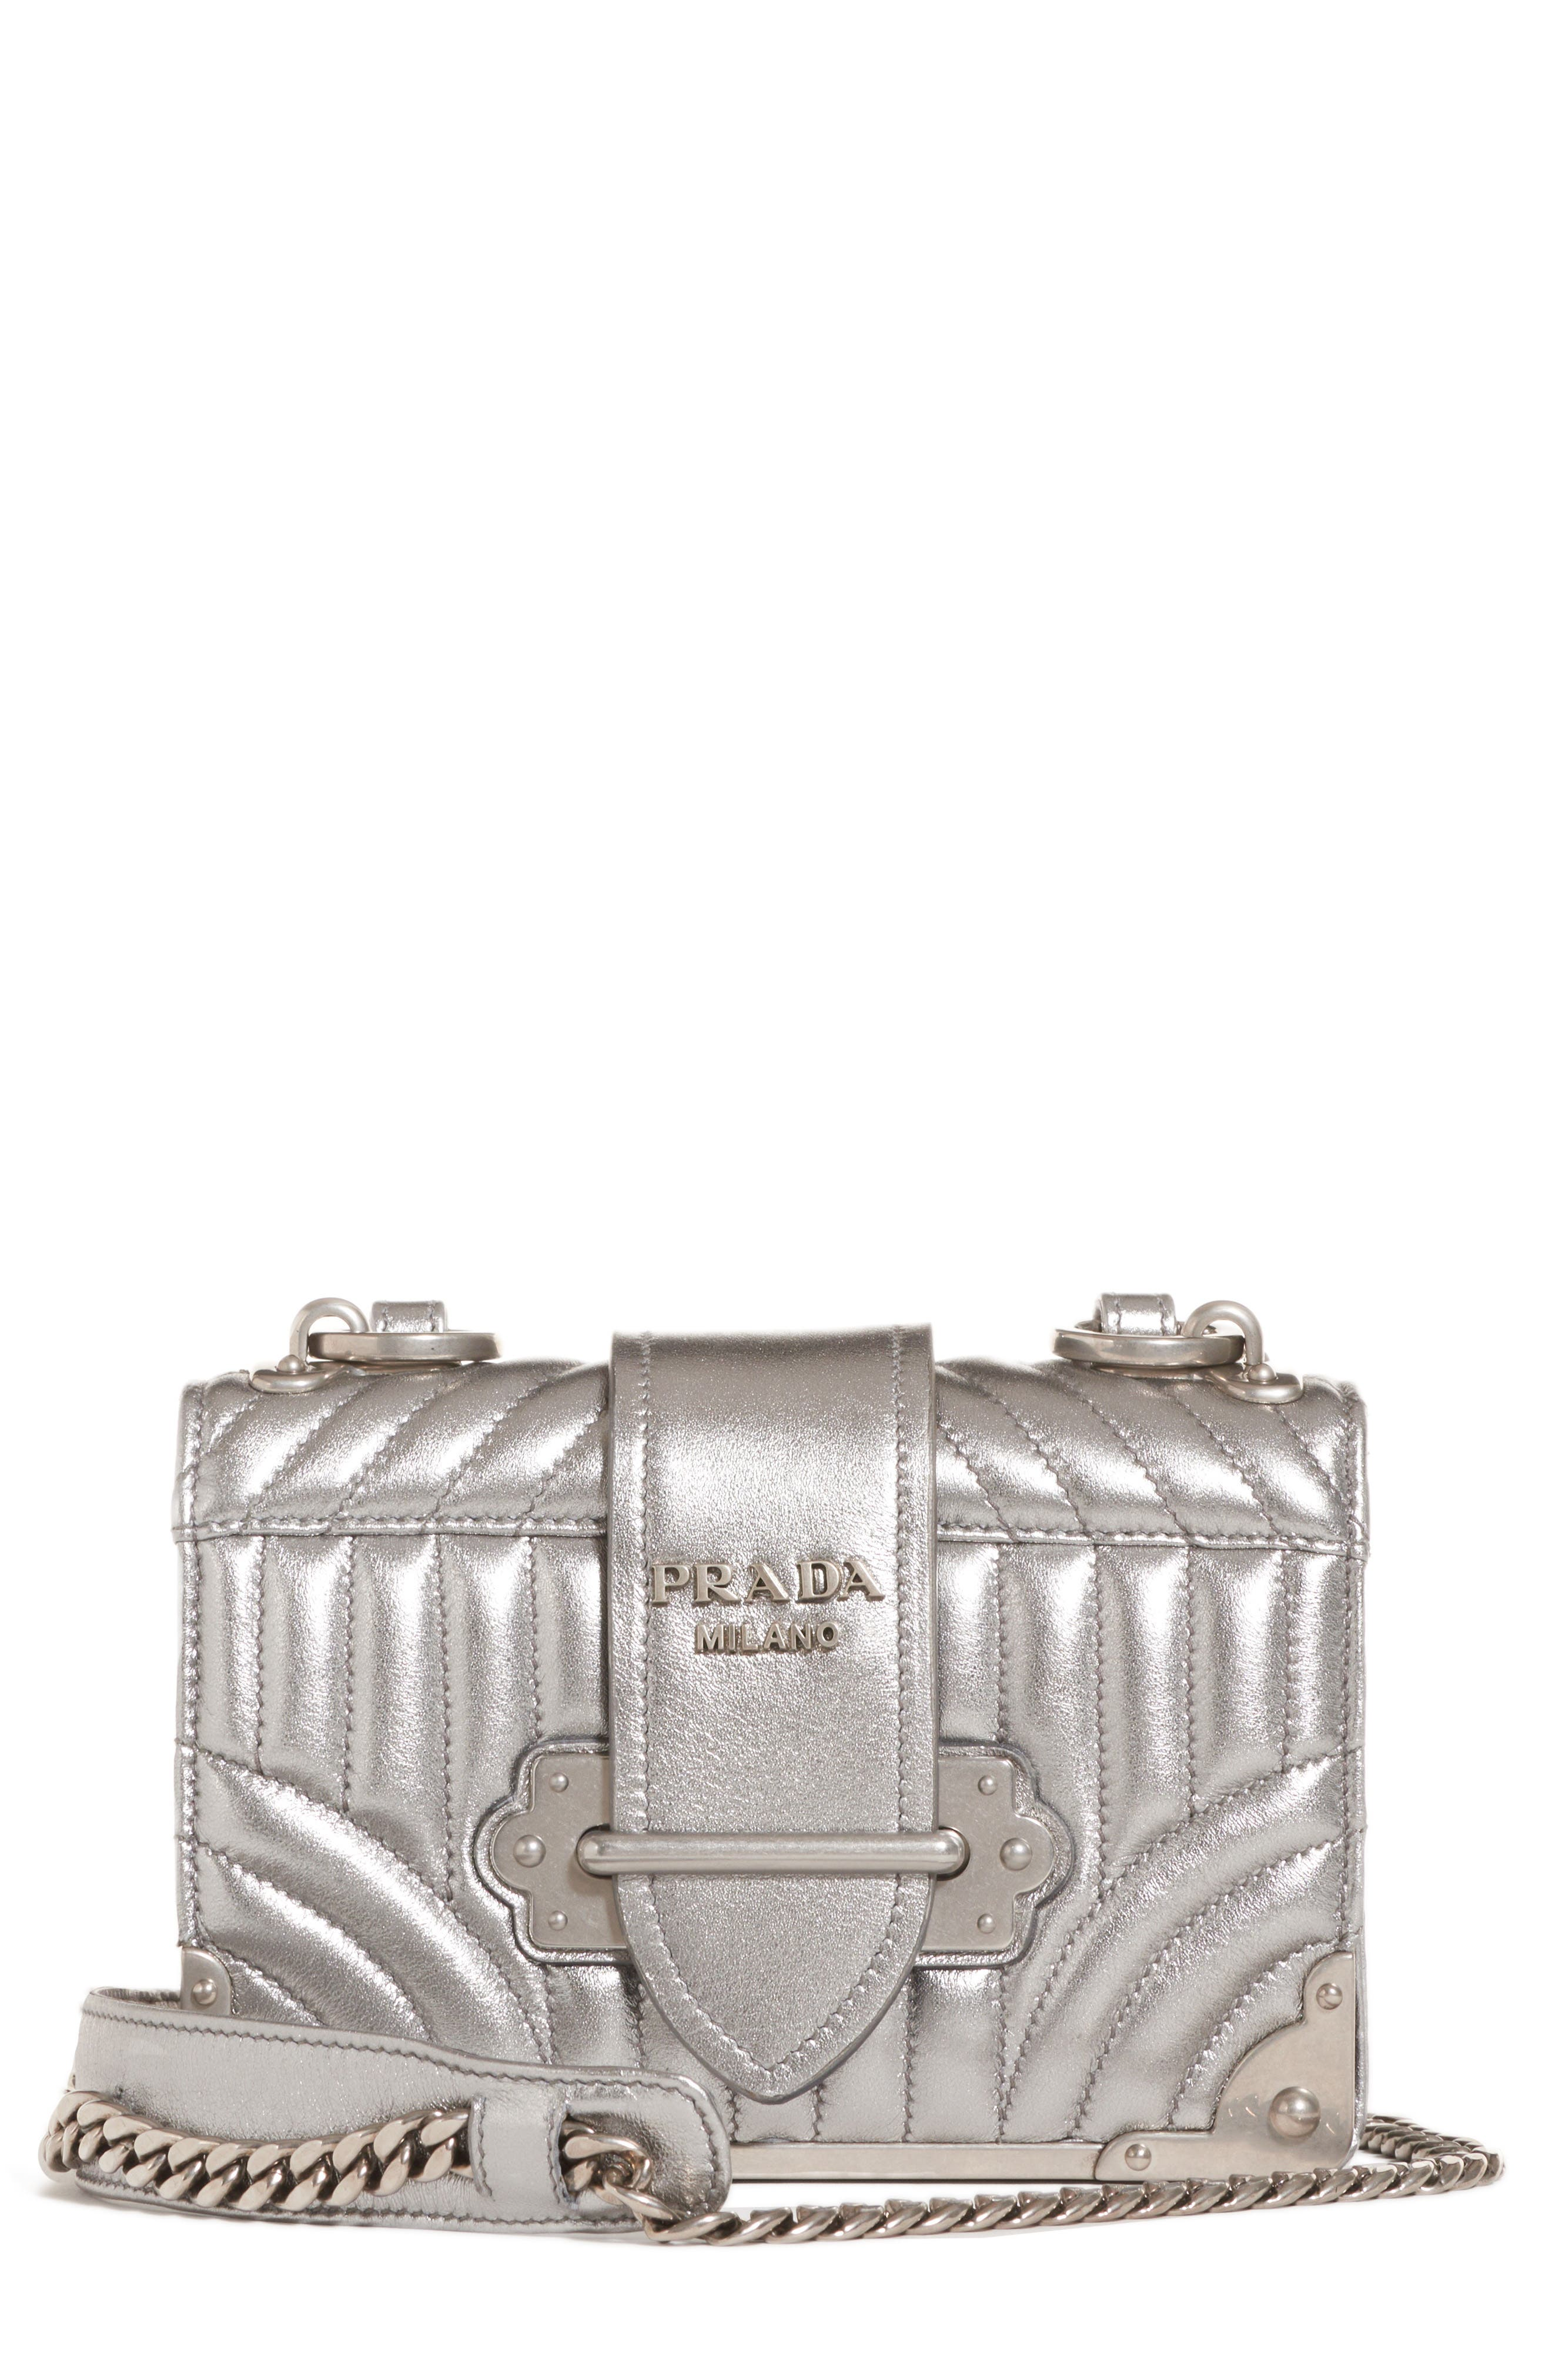 Cahier Quilted Metallic Leather Crossbody Bag,                         Main,                         color, CROMO